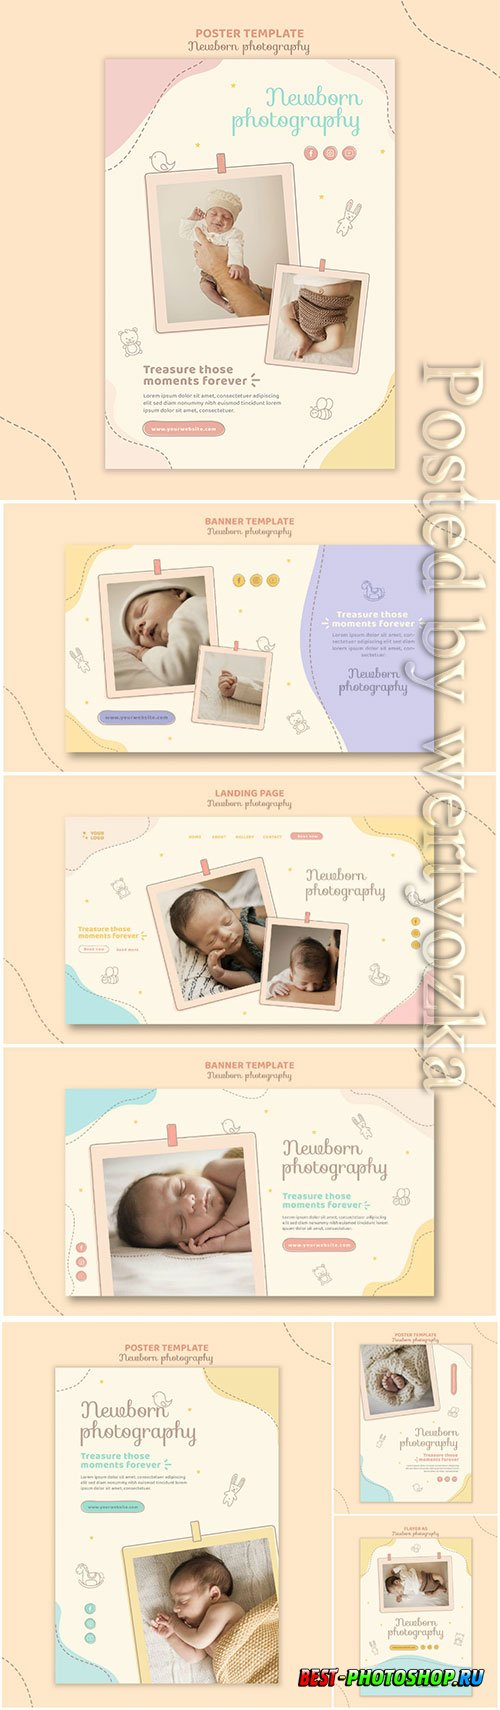 Cute sleeping baby banner template psd